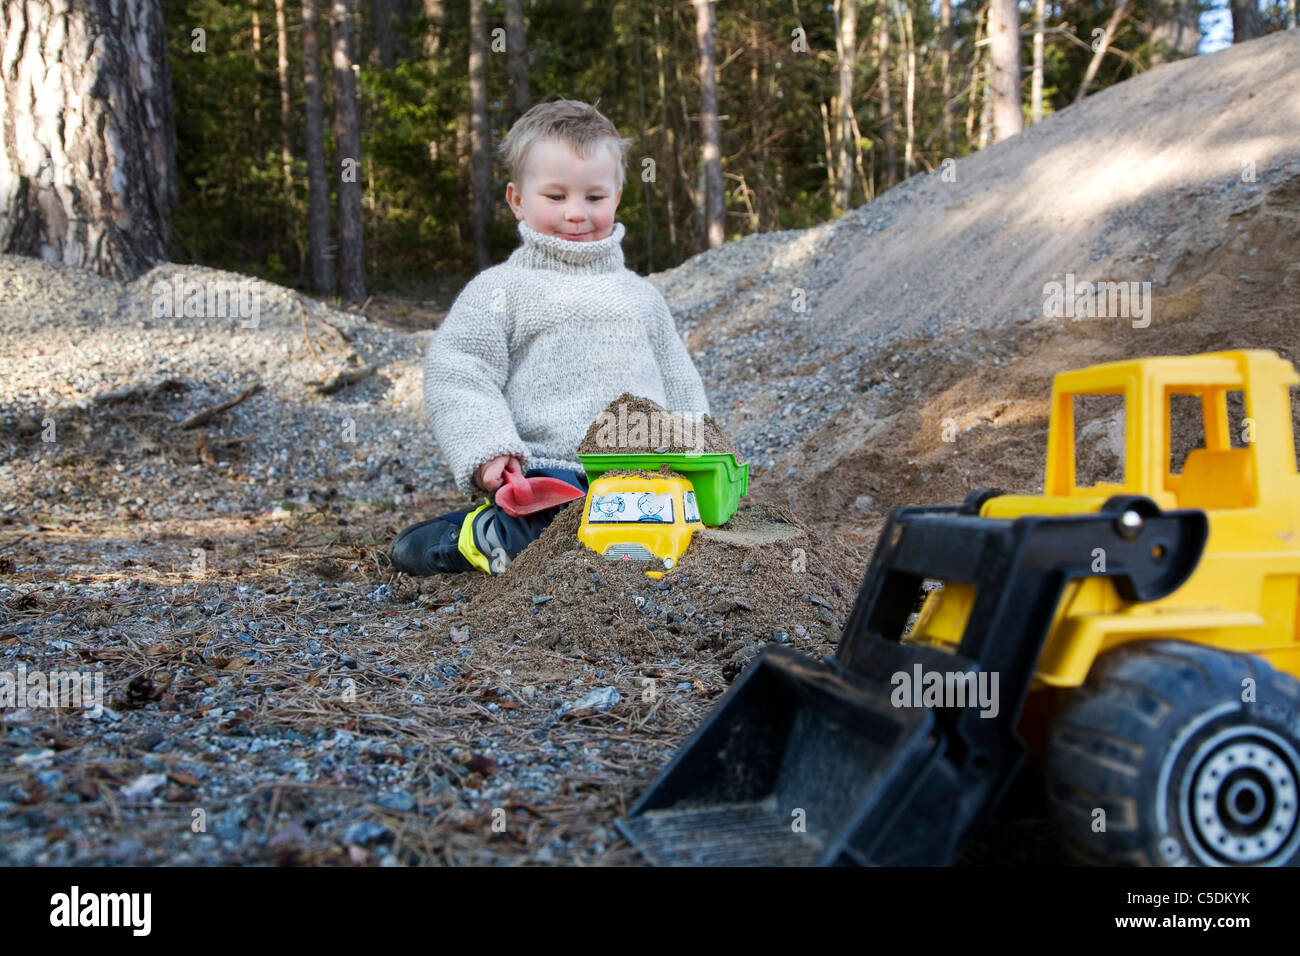 Little boy sitting in sandbox with cropped toy backhoe in foreground Stock Photo